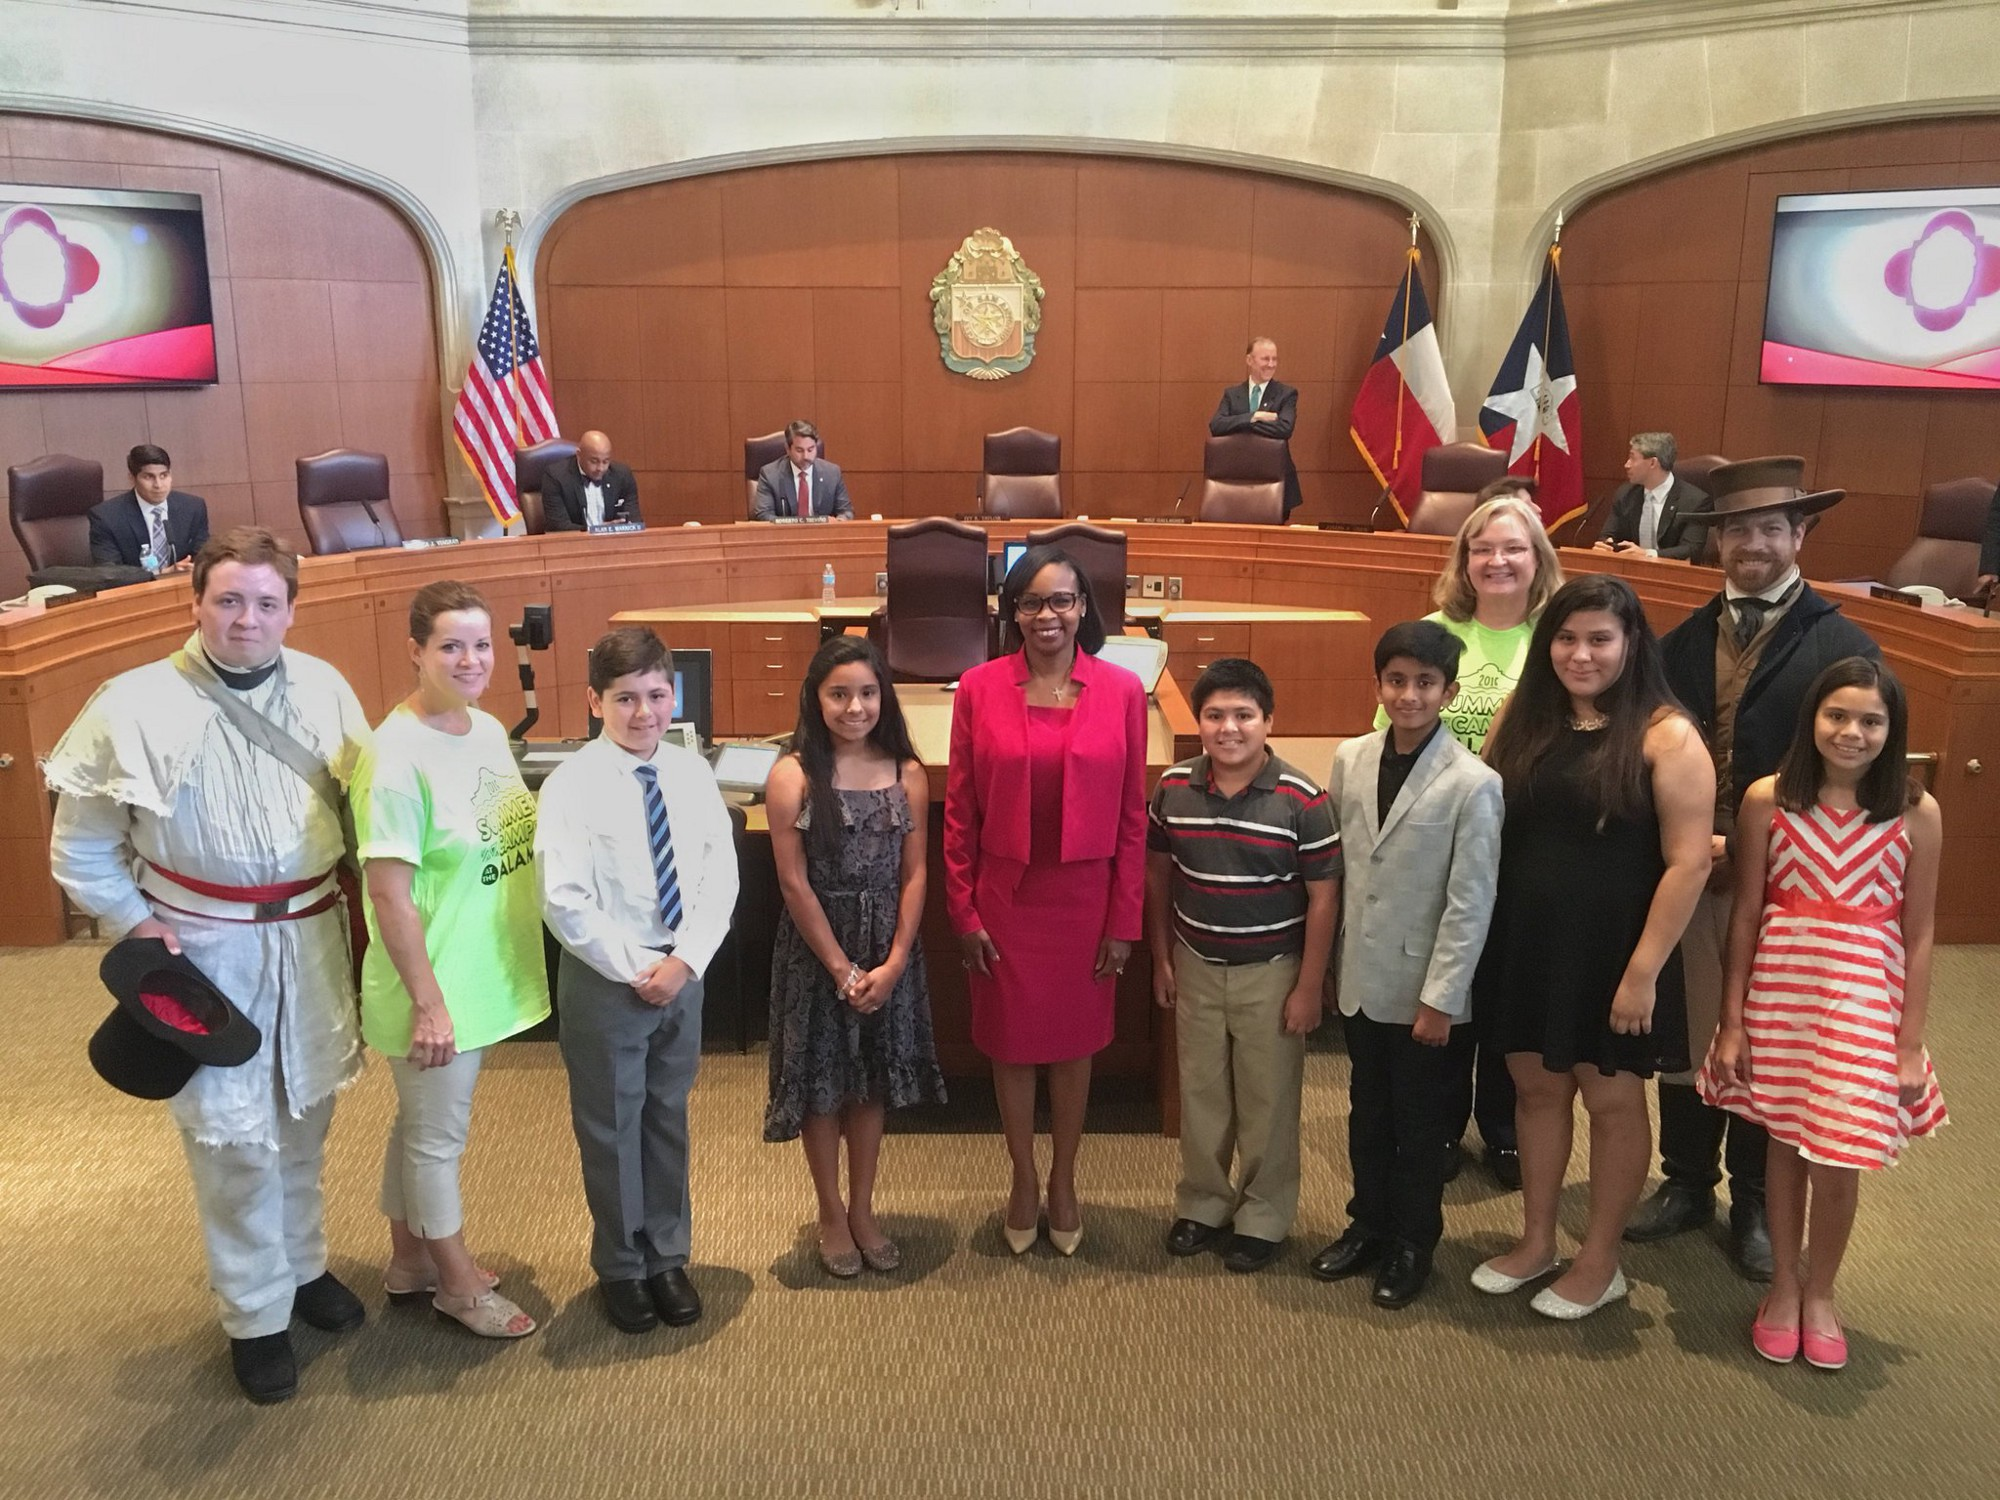 alamo summer camp scholarship essay winners the alamo medium or ivy r taylor honored the six scholarship winners at the san antonio city council ceremonials meeting on 14 2016 photo from or ivy taylor s